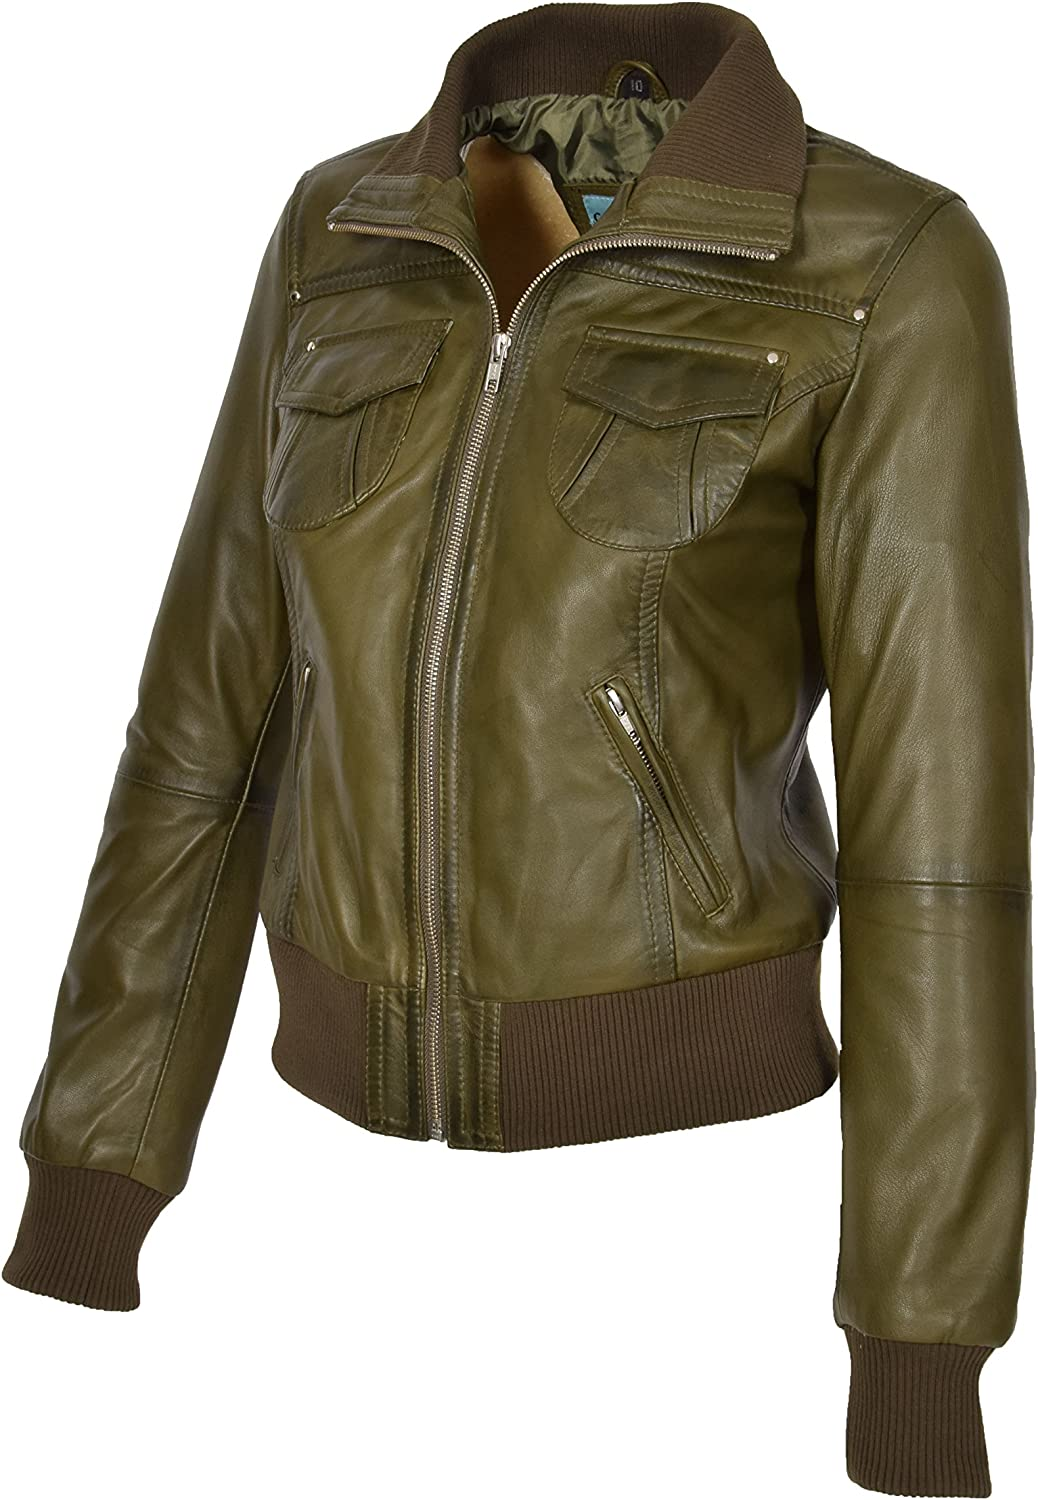 A1 FASHION GOODS Womens Olive Leather Bomber Jacket Trendy Slim Fit Zip Up Blouson Coat Cameron